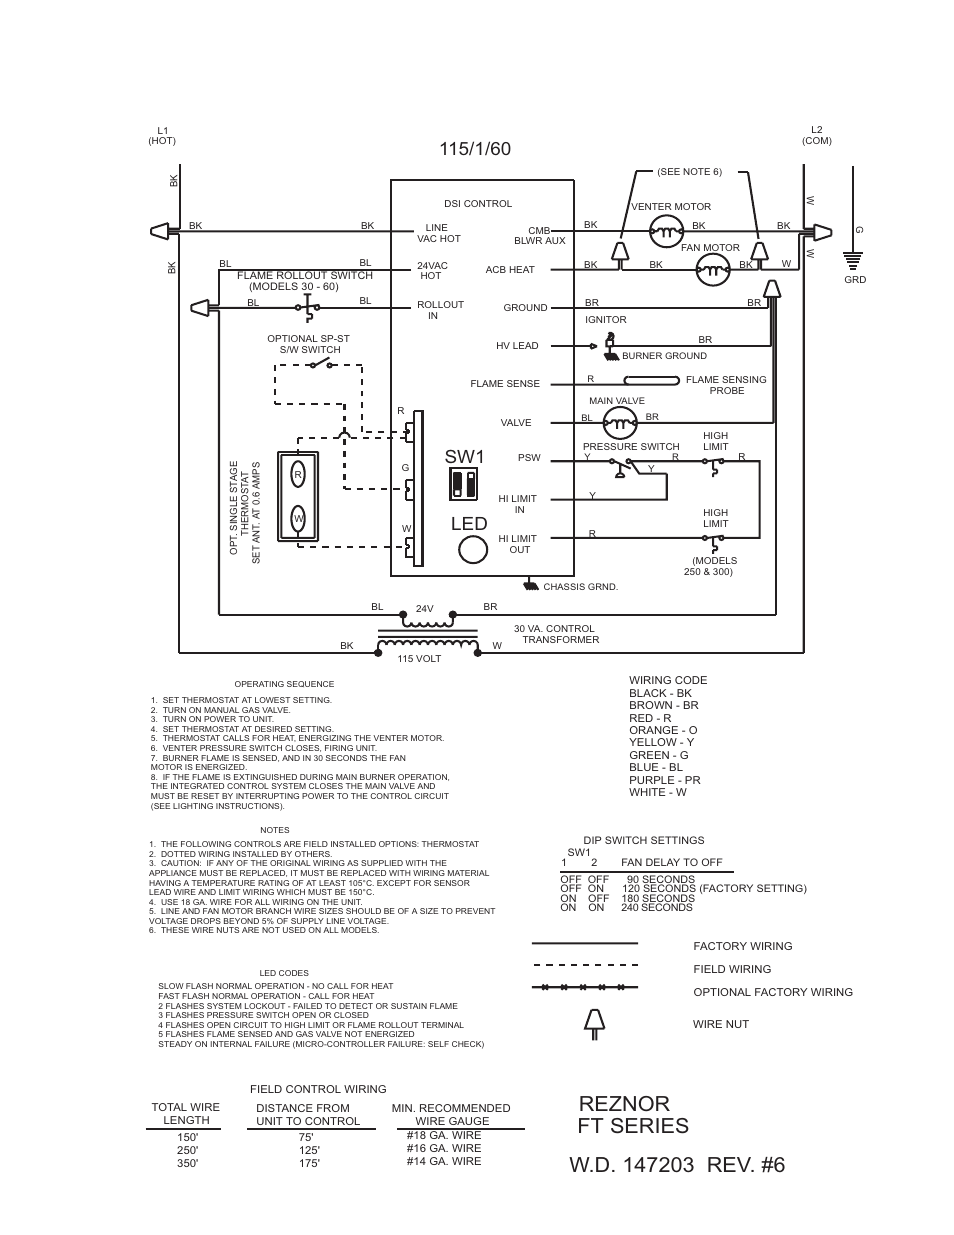 reznor ft unit installation manual page13 garage heater wiring diagram wiring diagram byblank gas heater wiring diagram at bayanpartner.co